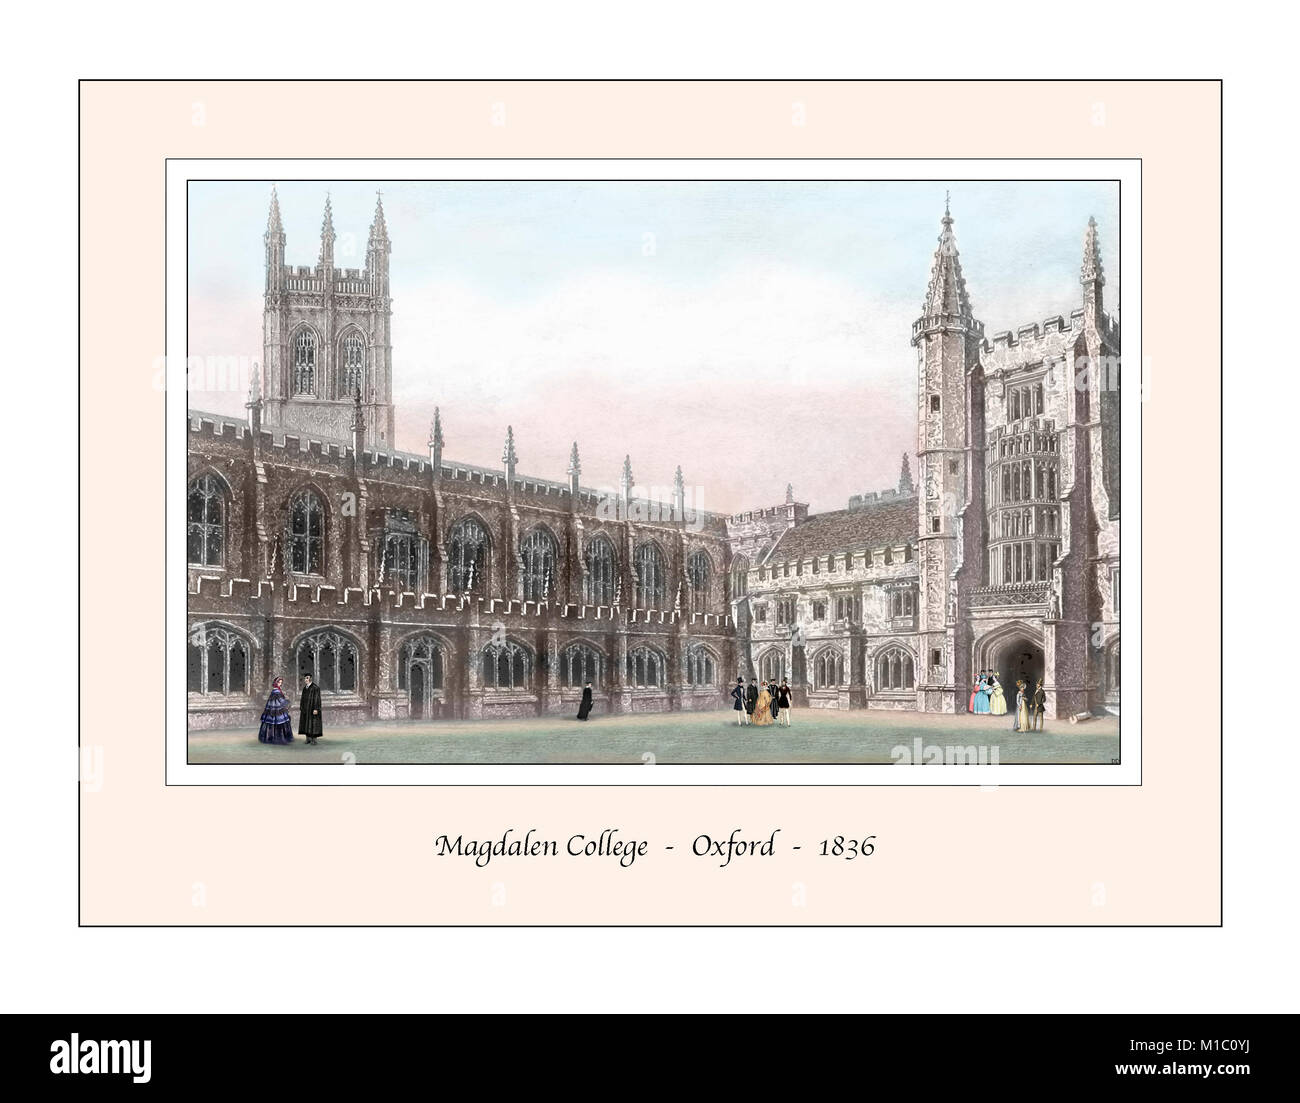 Magdalen College Oxford Original Design based on a 19th century Engraving - Stock Image